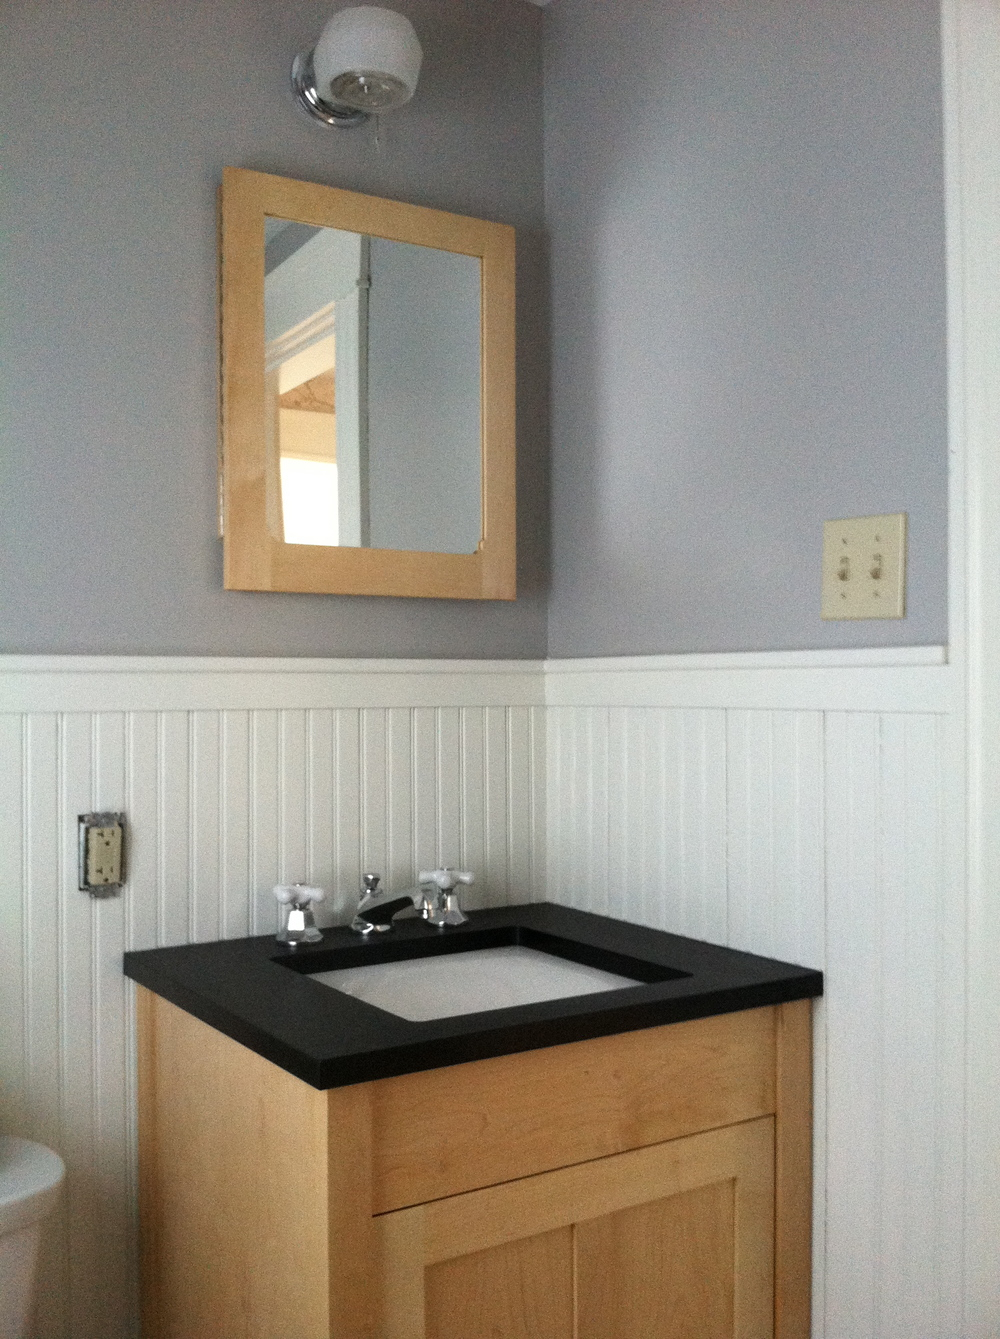 Bathroom Vanity and Medicine Cabinet